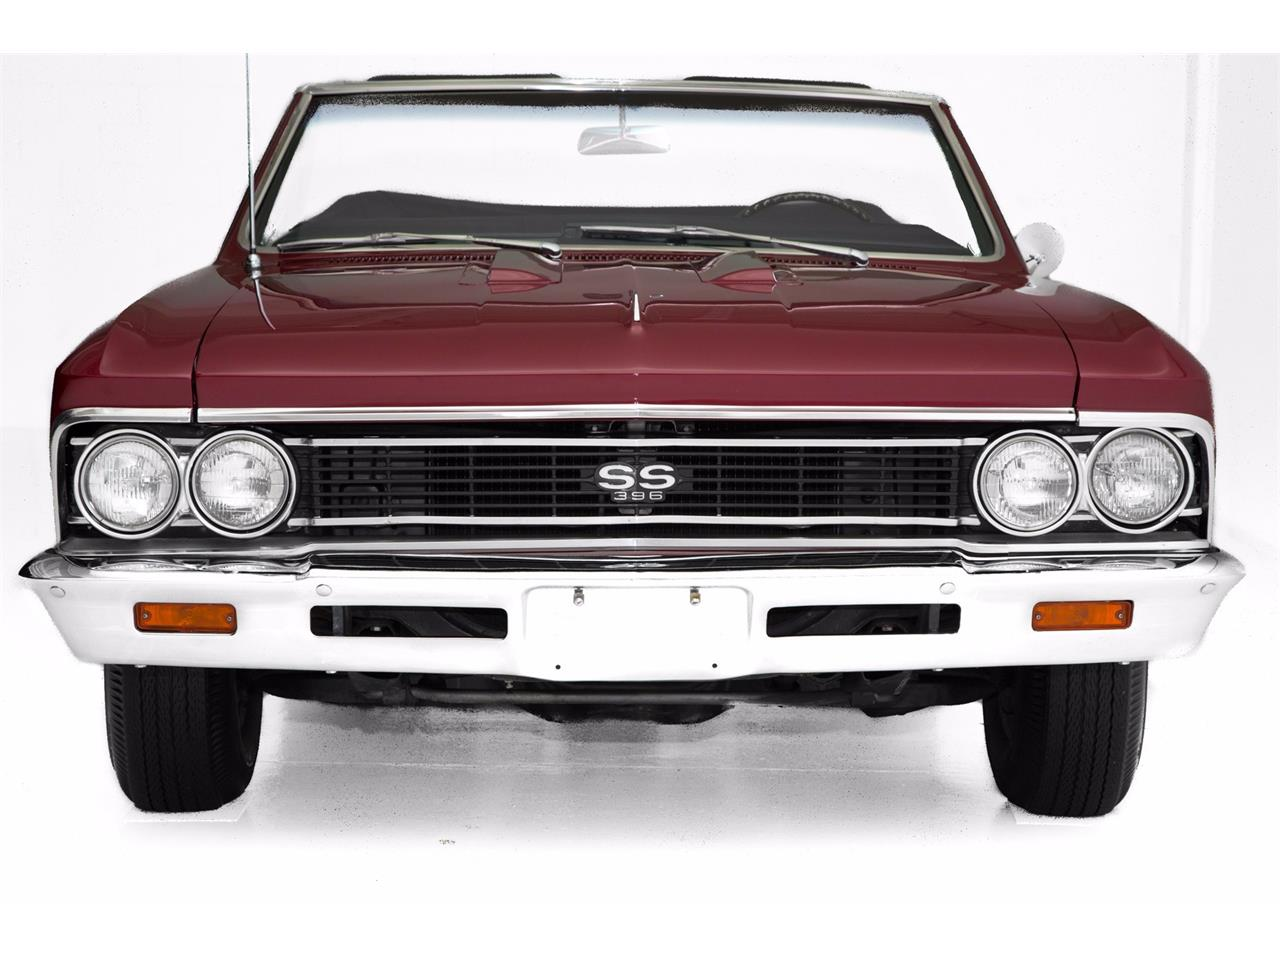 1966 Chevrolet Chevelle For Sale Cc 1033643 Bel Air Value Large Picture Of 66 M5kb